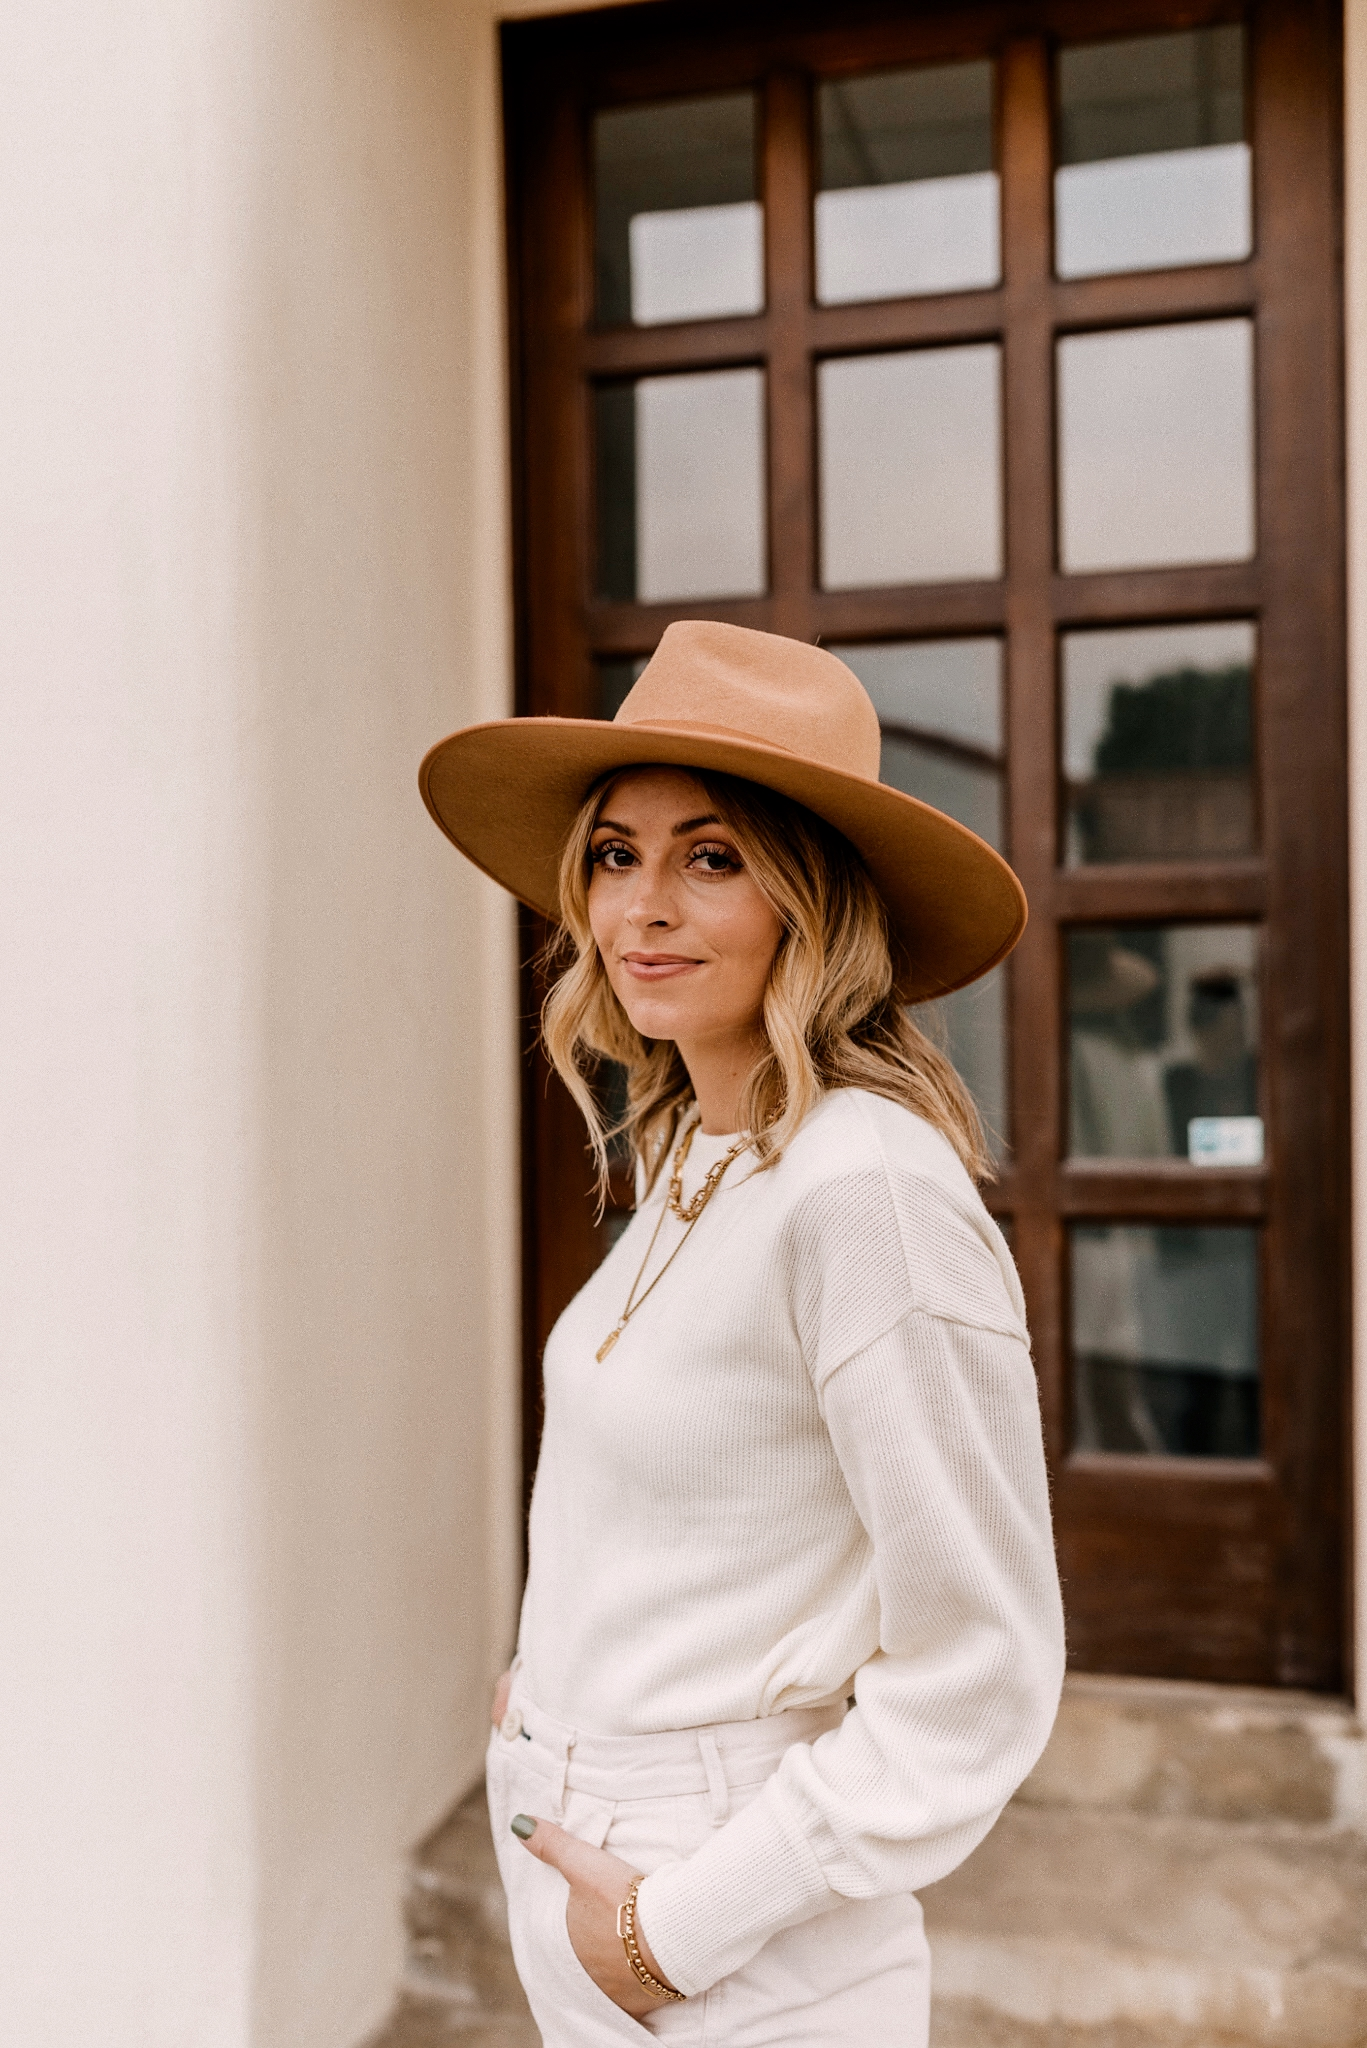 Fall fedora Hats |Fedora Hats by popular San Diego fashion blog, Navy Grace: image of a woman wearing a Madewell Brushed Knit Puff-Sleeve Top, Everlane The Arc Canvas Pant,Gucci Women's Jordaan GG Canvas Loafers and Free People Rancher Felt Hat.